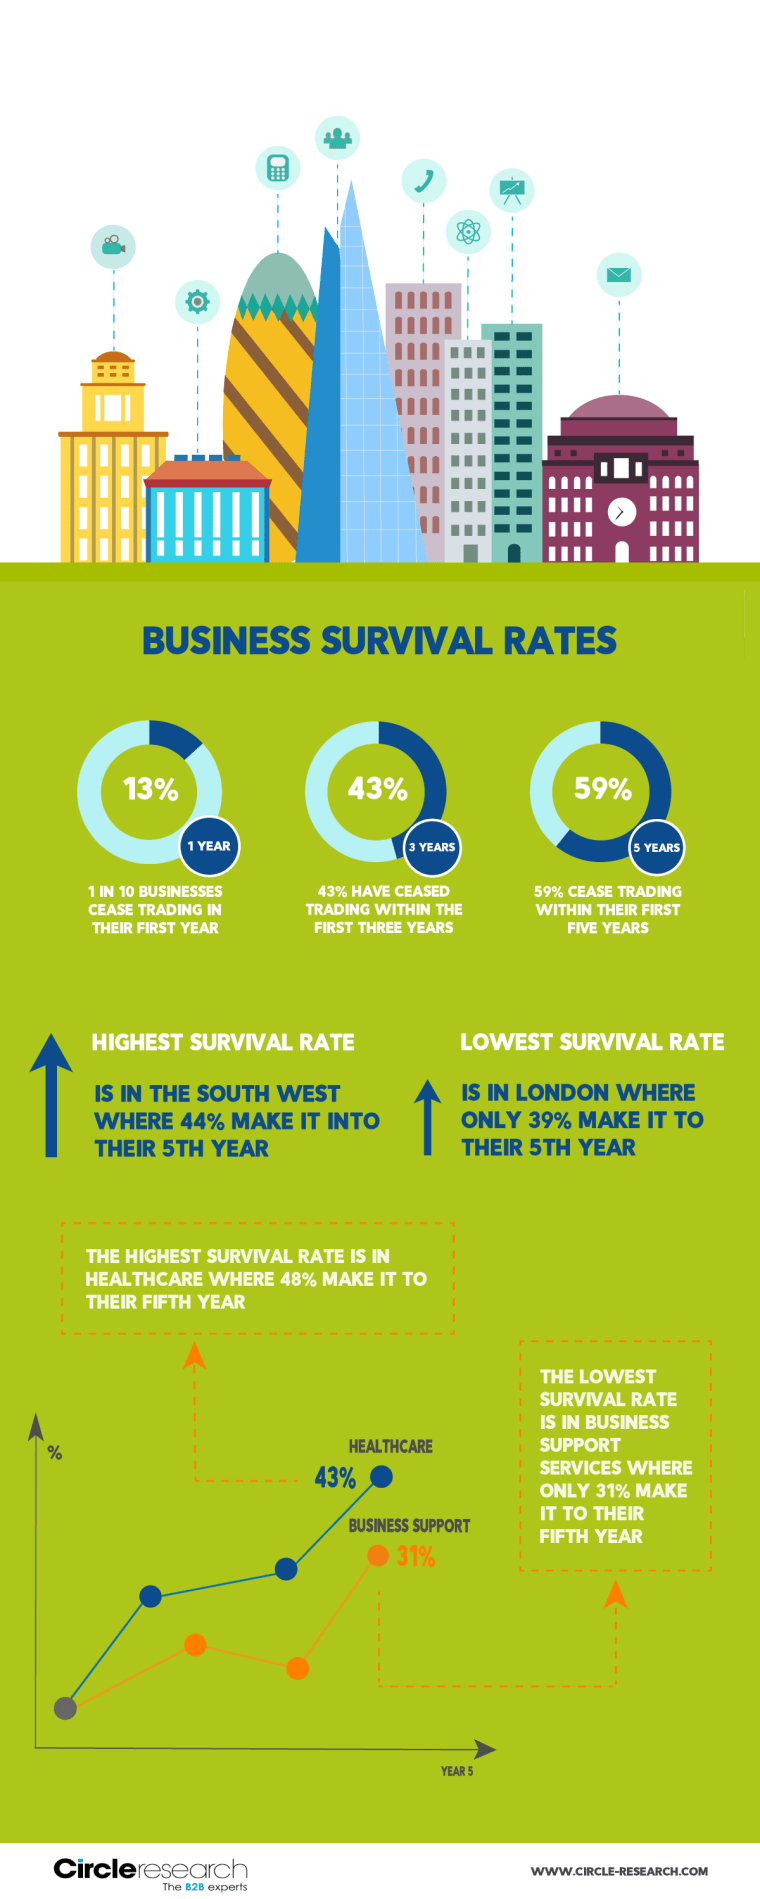 Business survival rates in the UK - infographic